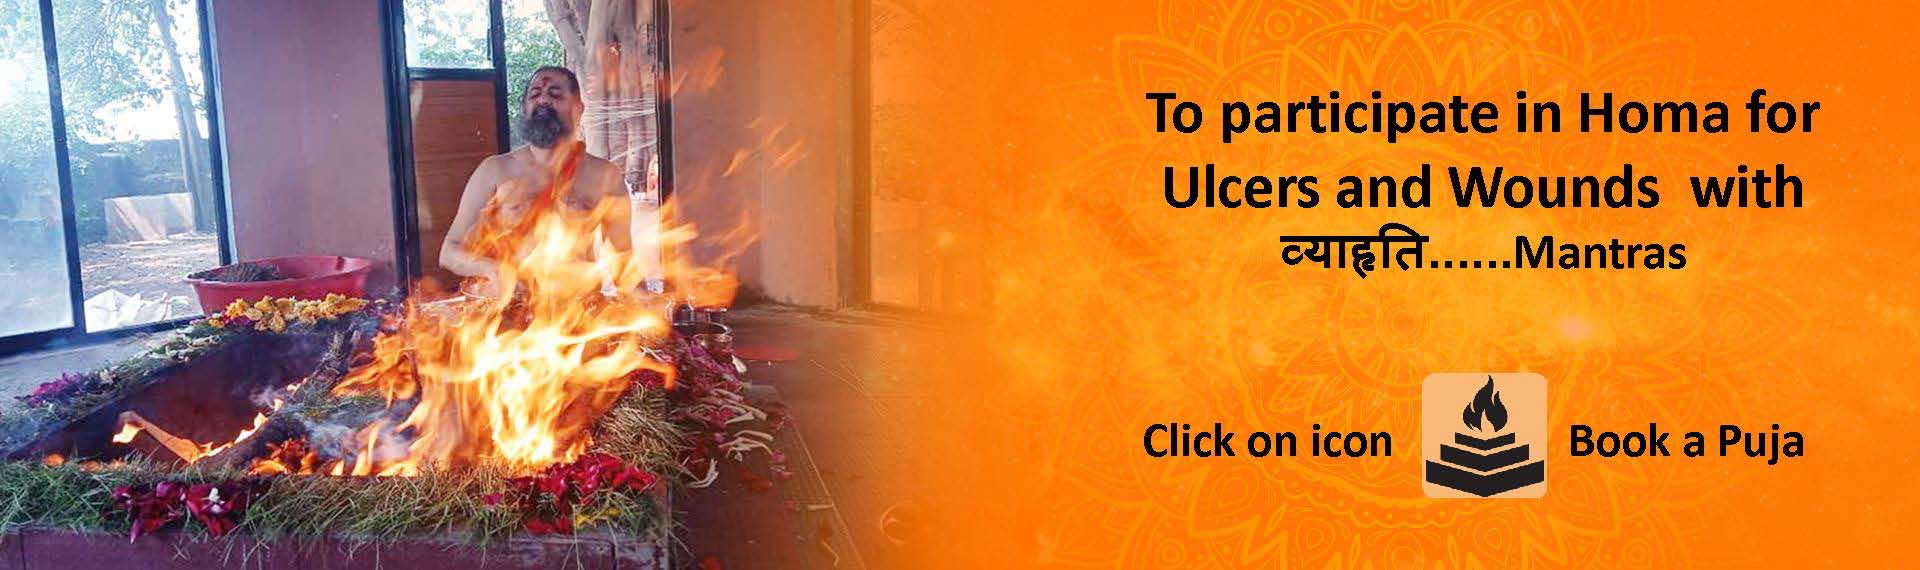 Homa for Ulcers and Wounds